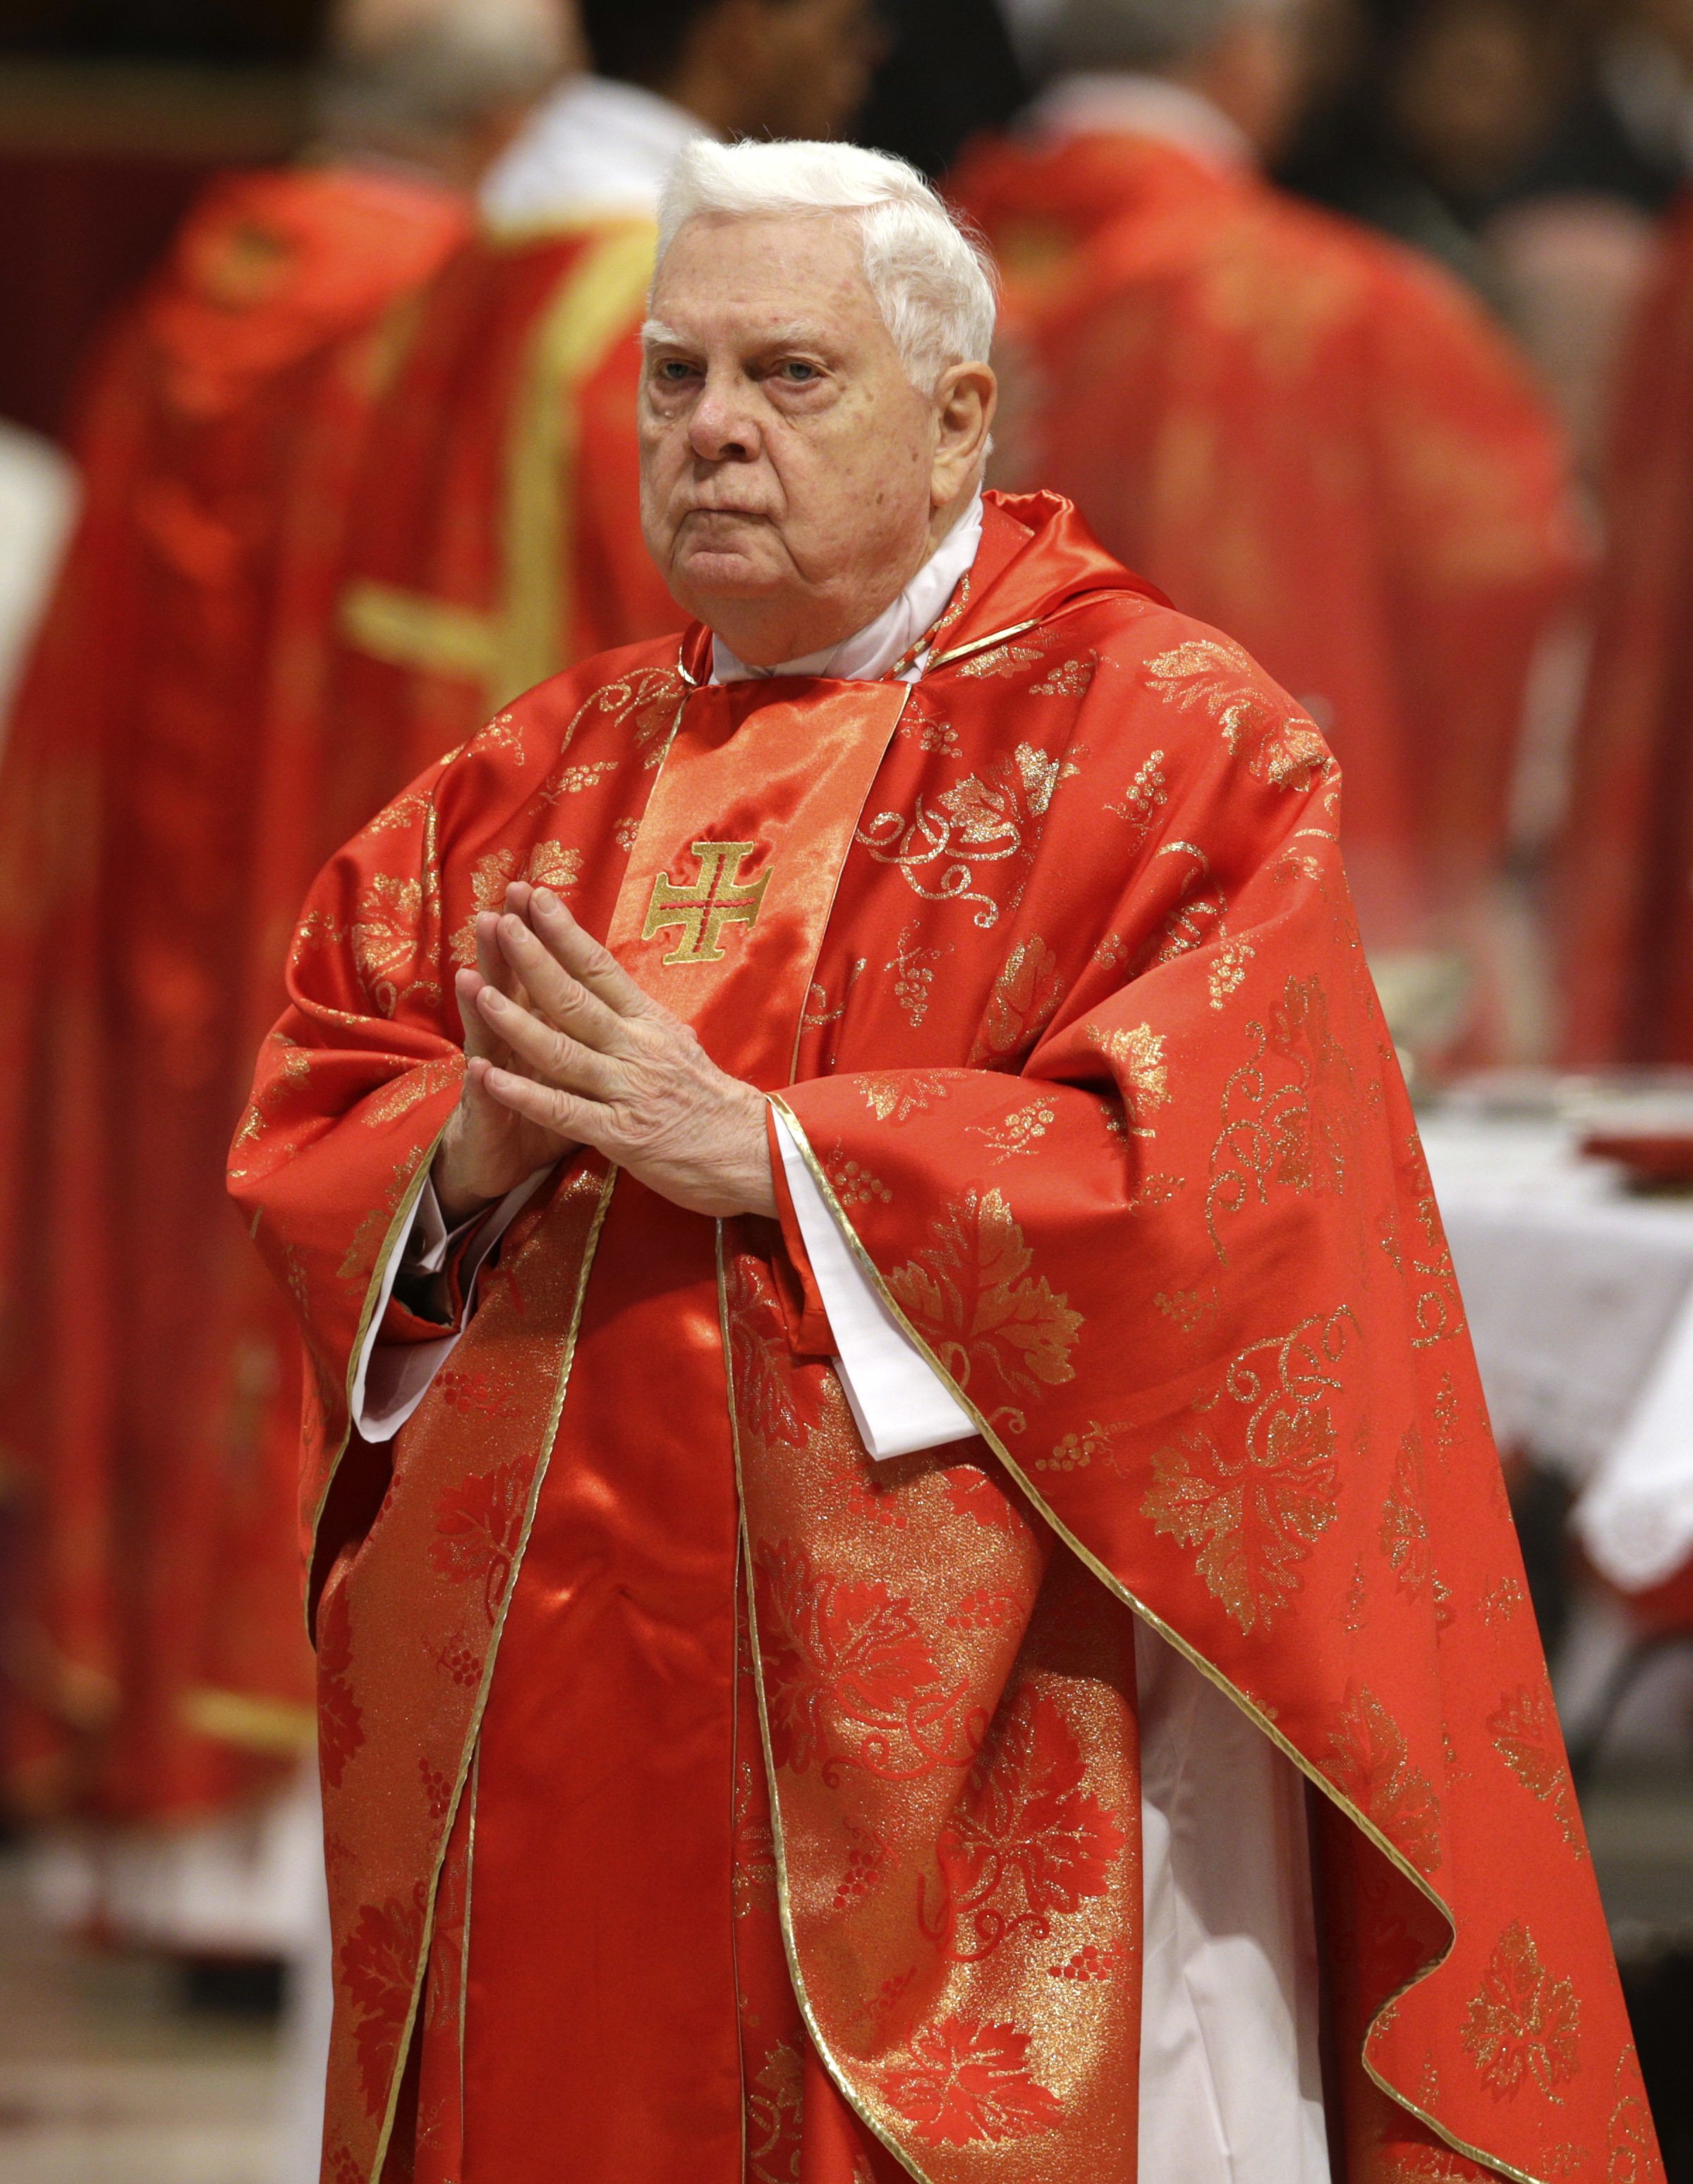 <div class='meta'><div class='origin-logo' data-origin='none'></div><span class='caption-text' data-credit='Andrew Medichini, File/AP Photo'>Cardinal Bernard Law, the former archbishop of Boston who became a central figure in the child abuse scandal in the Catholic church, died on Dec. 20, 2017. He was 86.</span></div>